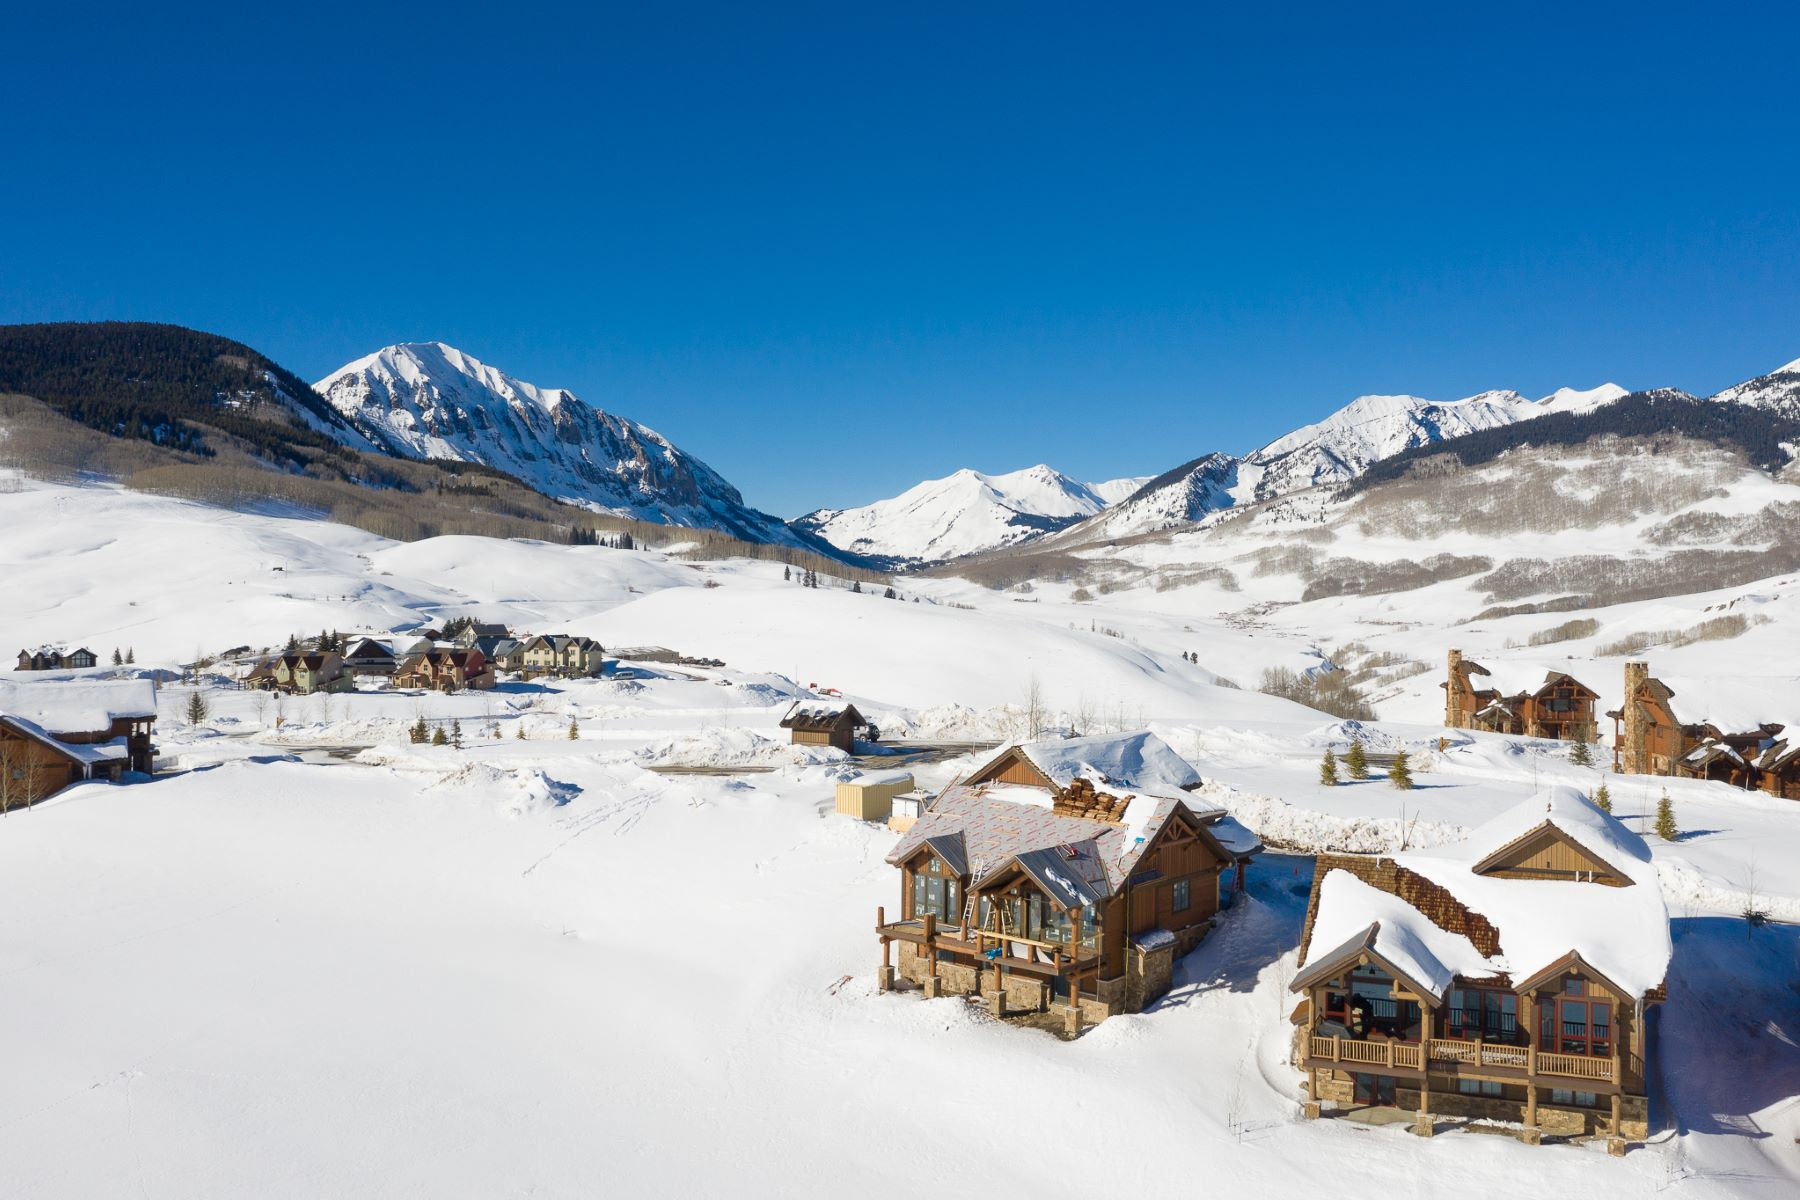 Single Family Homes for Sale at Wildhorse at Prospect 14 Appaloosa Road Mount Crested Butte, Colorado 81225 United States